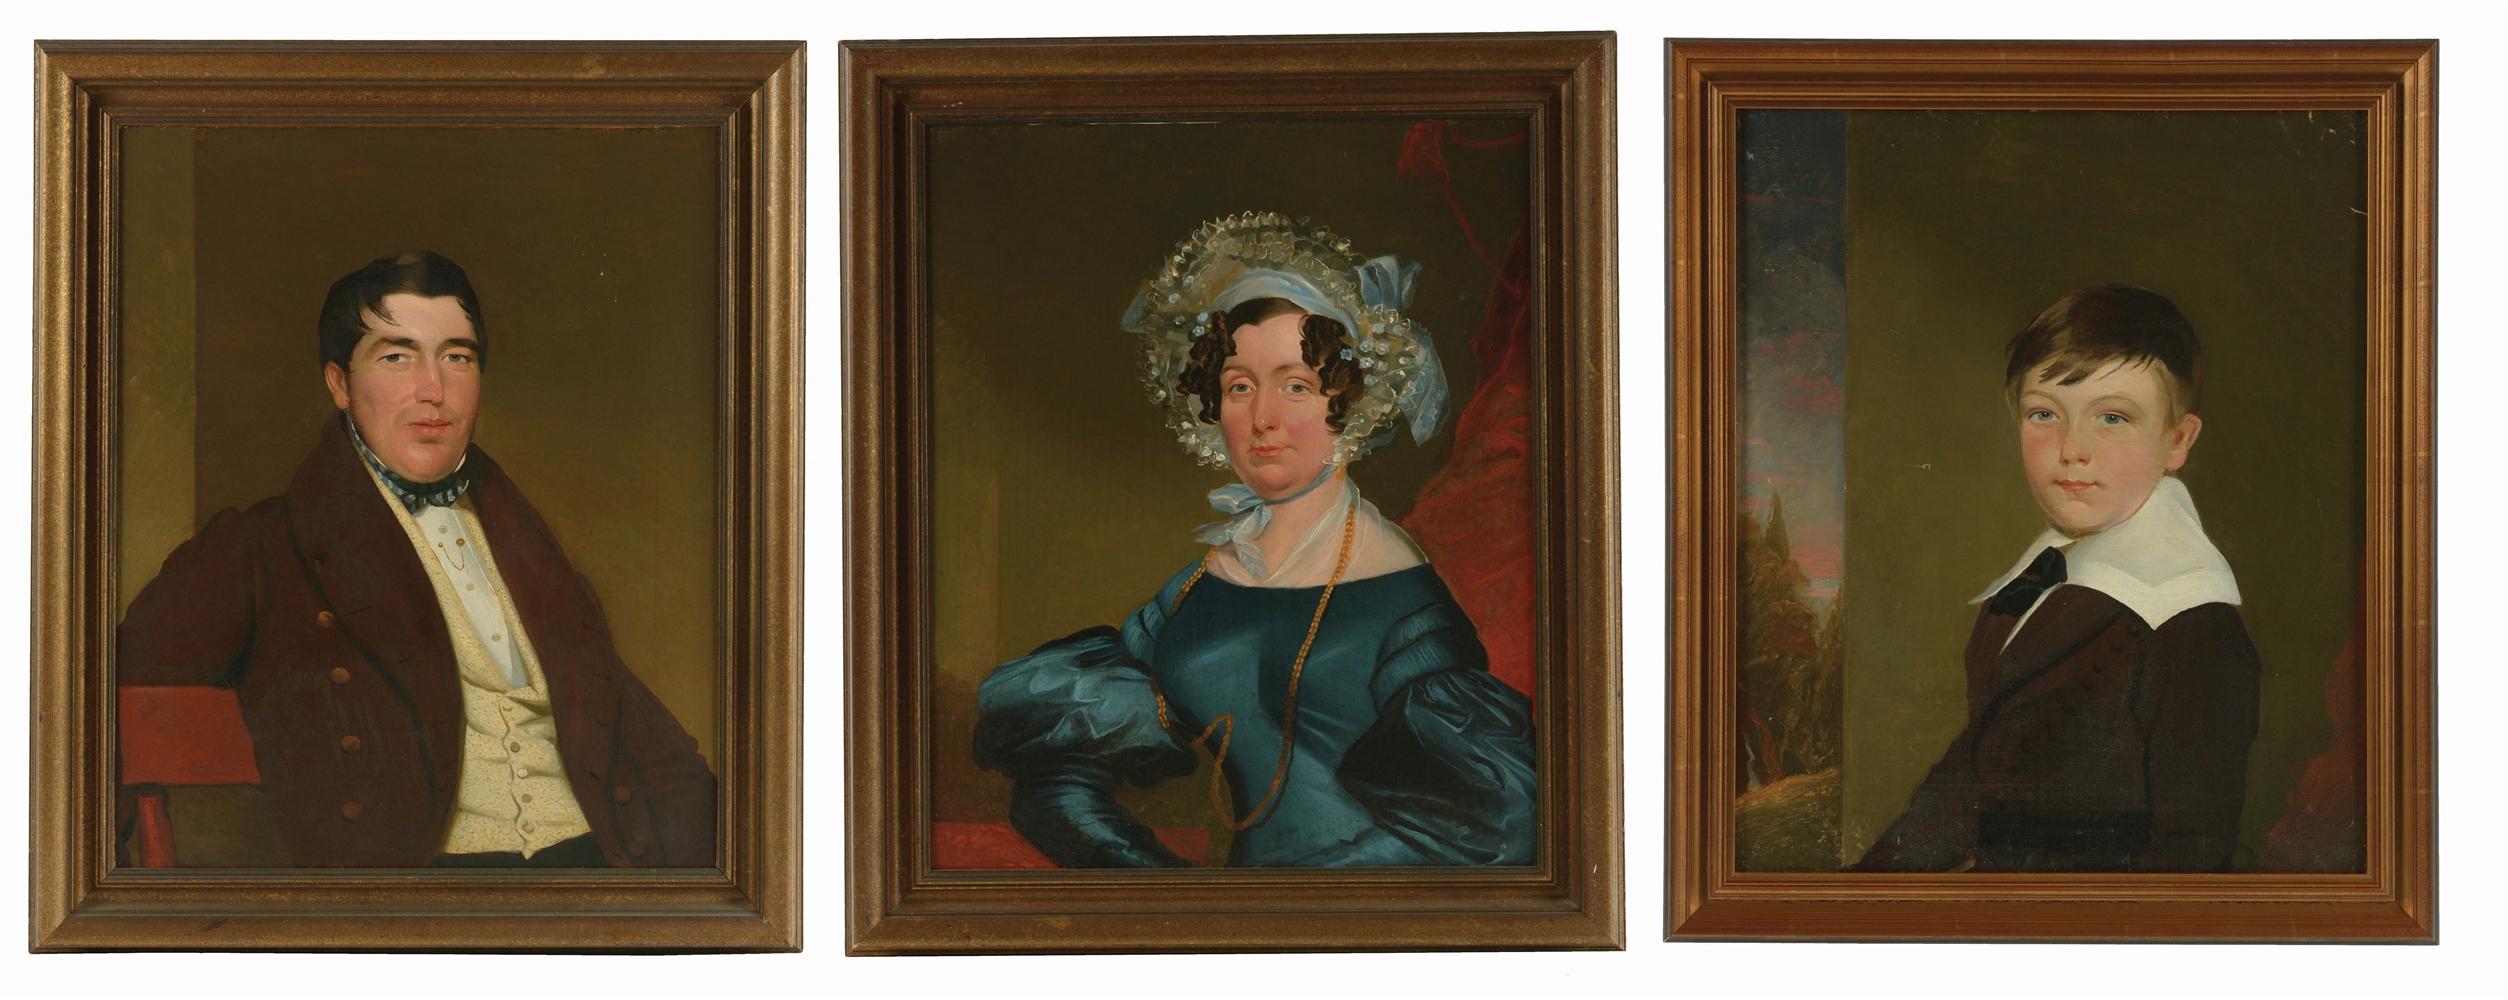 LOT OF 3: PAIR OF ENGLISH SCHOOL (EARLY 19TH CENTURY) PRIMITIVE PORTRAITS OF MR. AND MRS. CHARLES SHEPPARD AND SON.